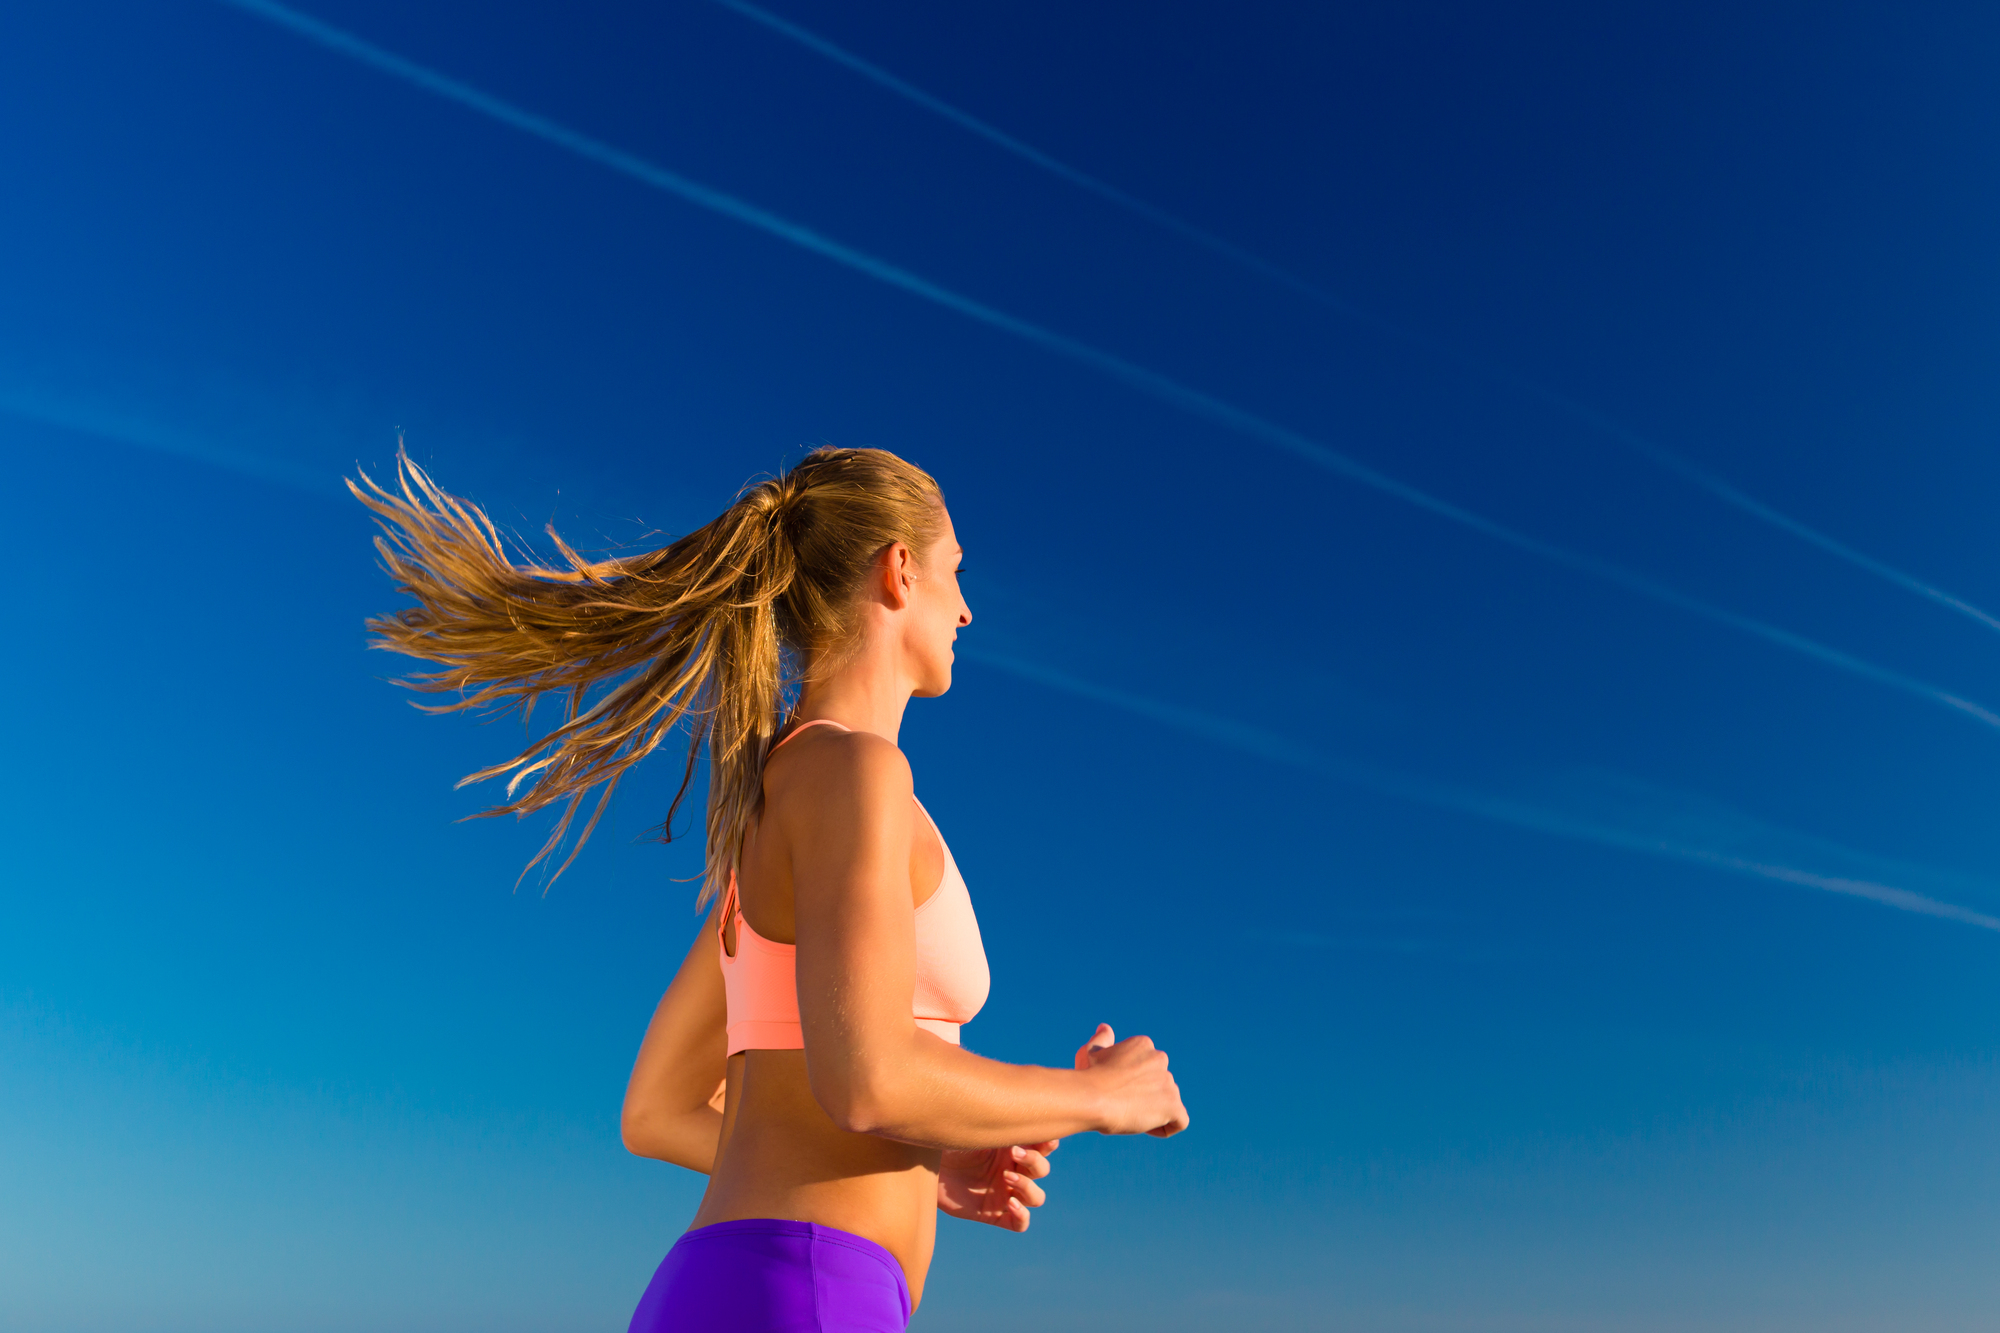 Sport and Fitness - woman jogging under clear blue sky